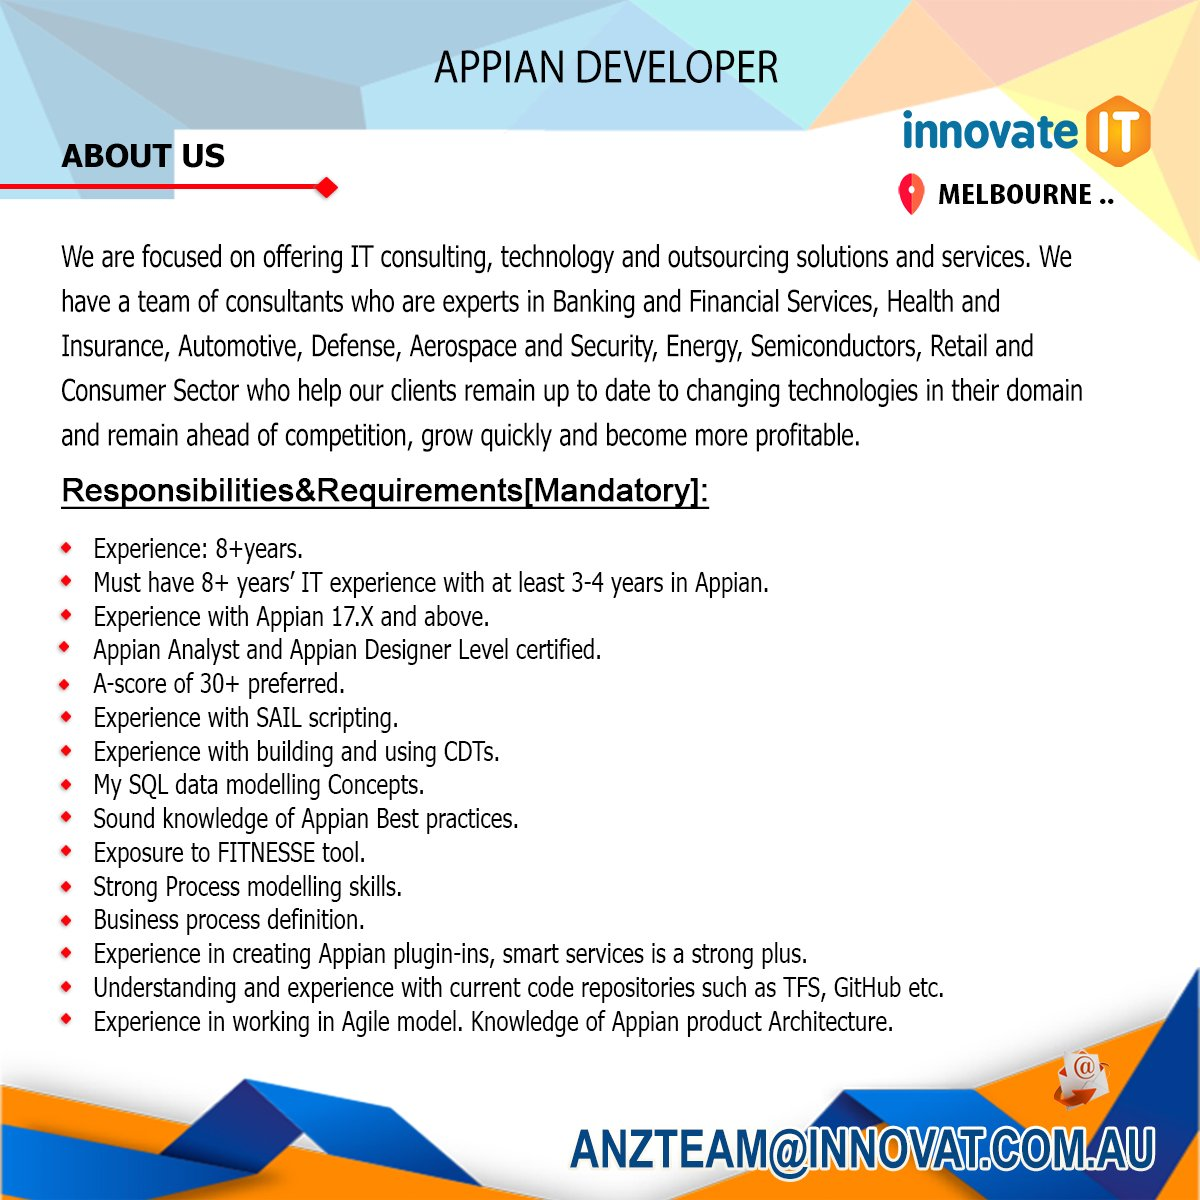 innovat it on jobs australiaexcellent opportunity for appian developer has an experience Resume Appian Developer Resume